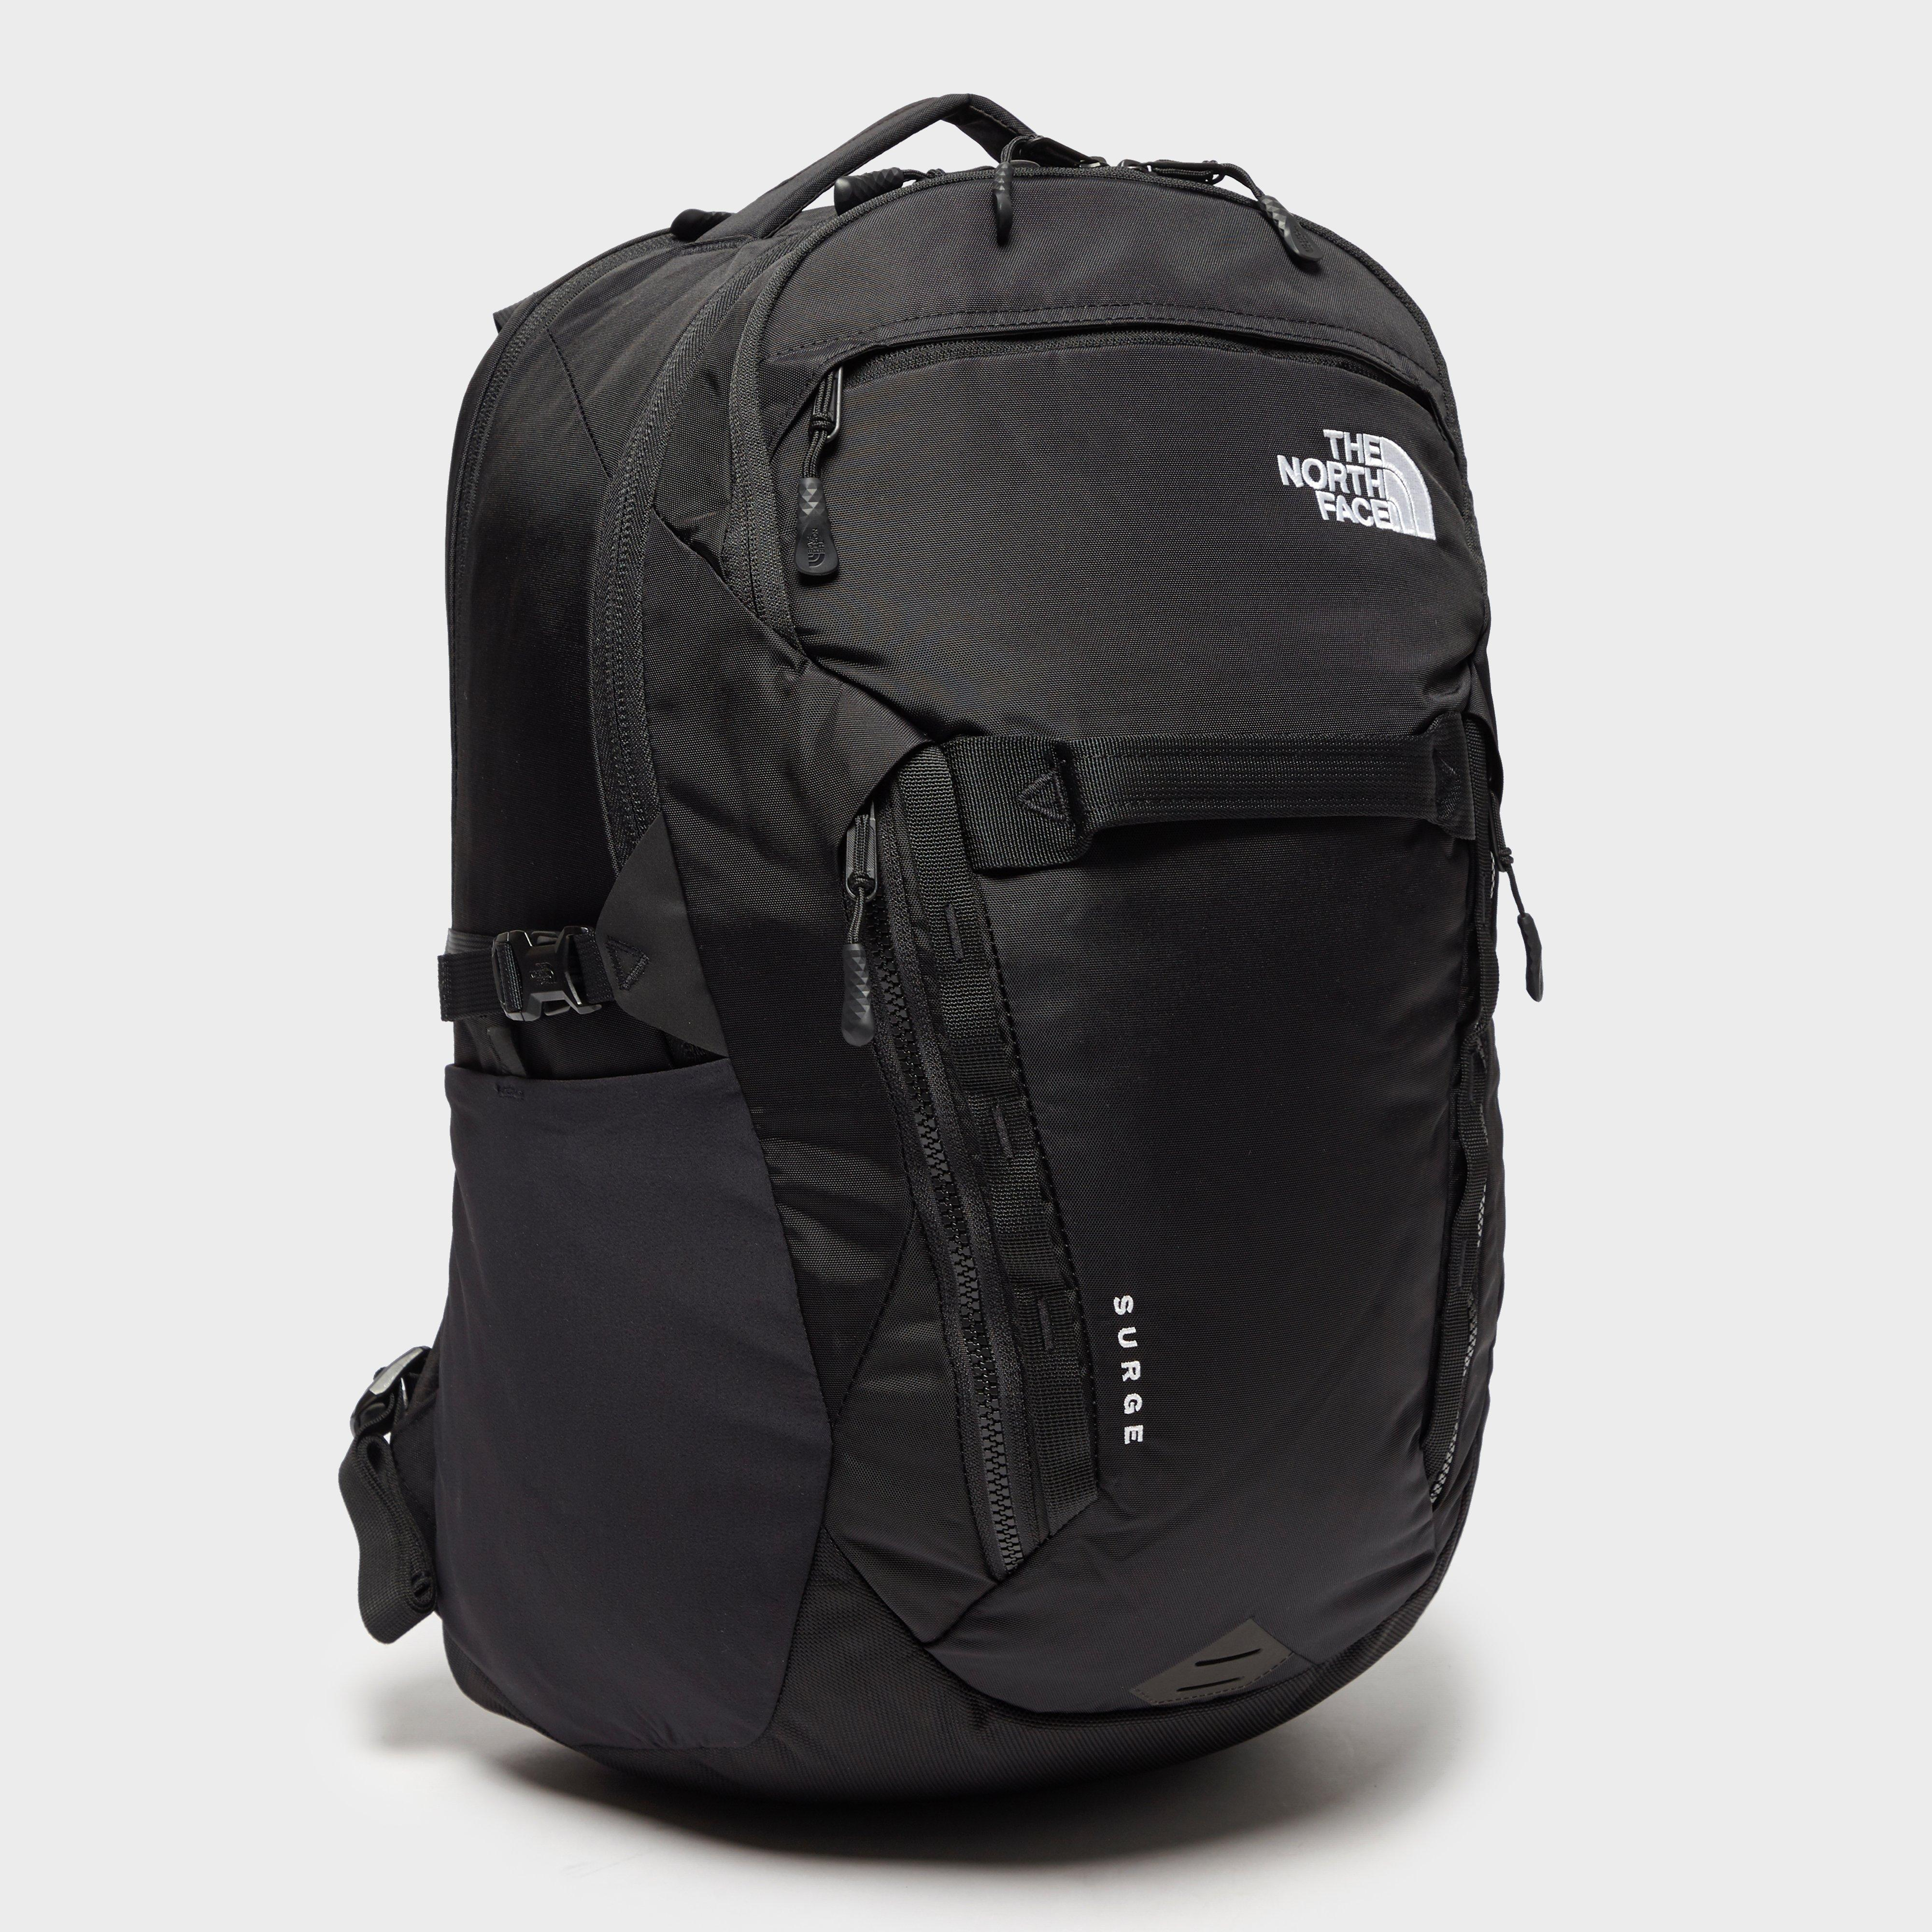 ef998042e9 The North Face Surge Backpack